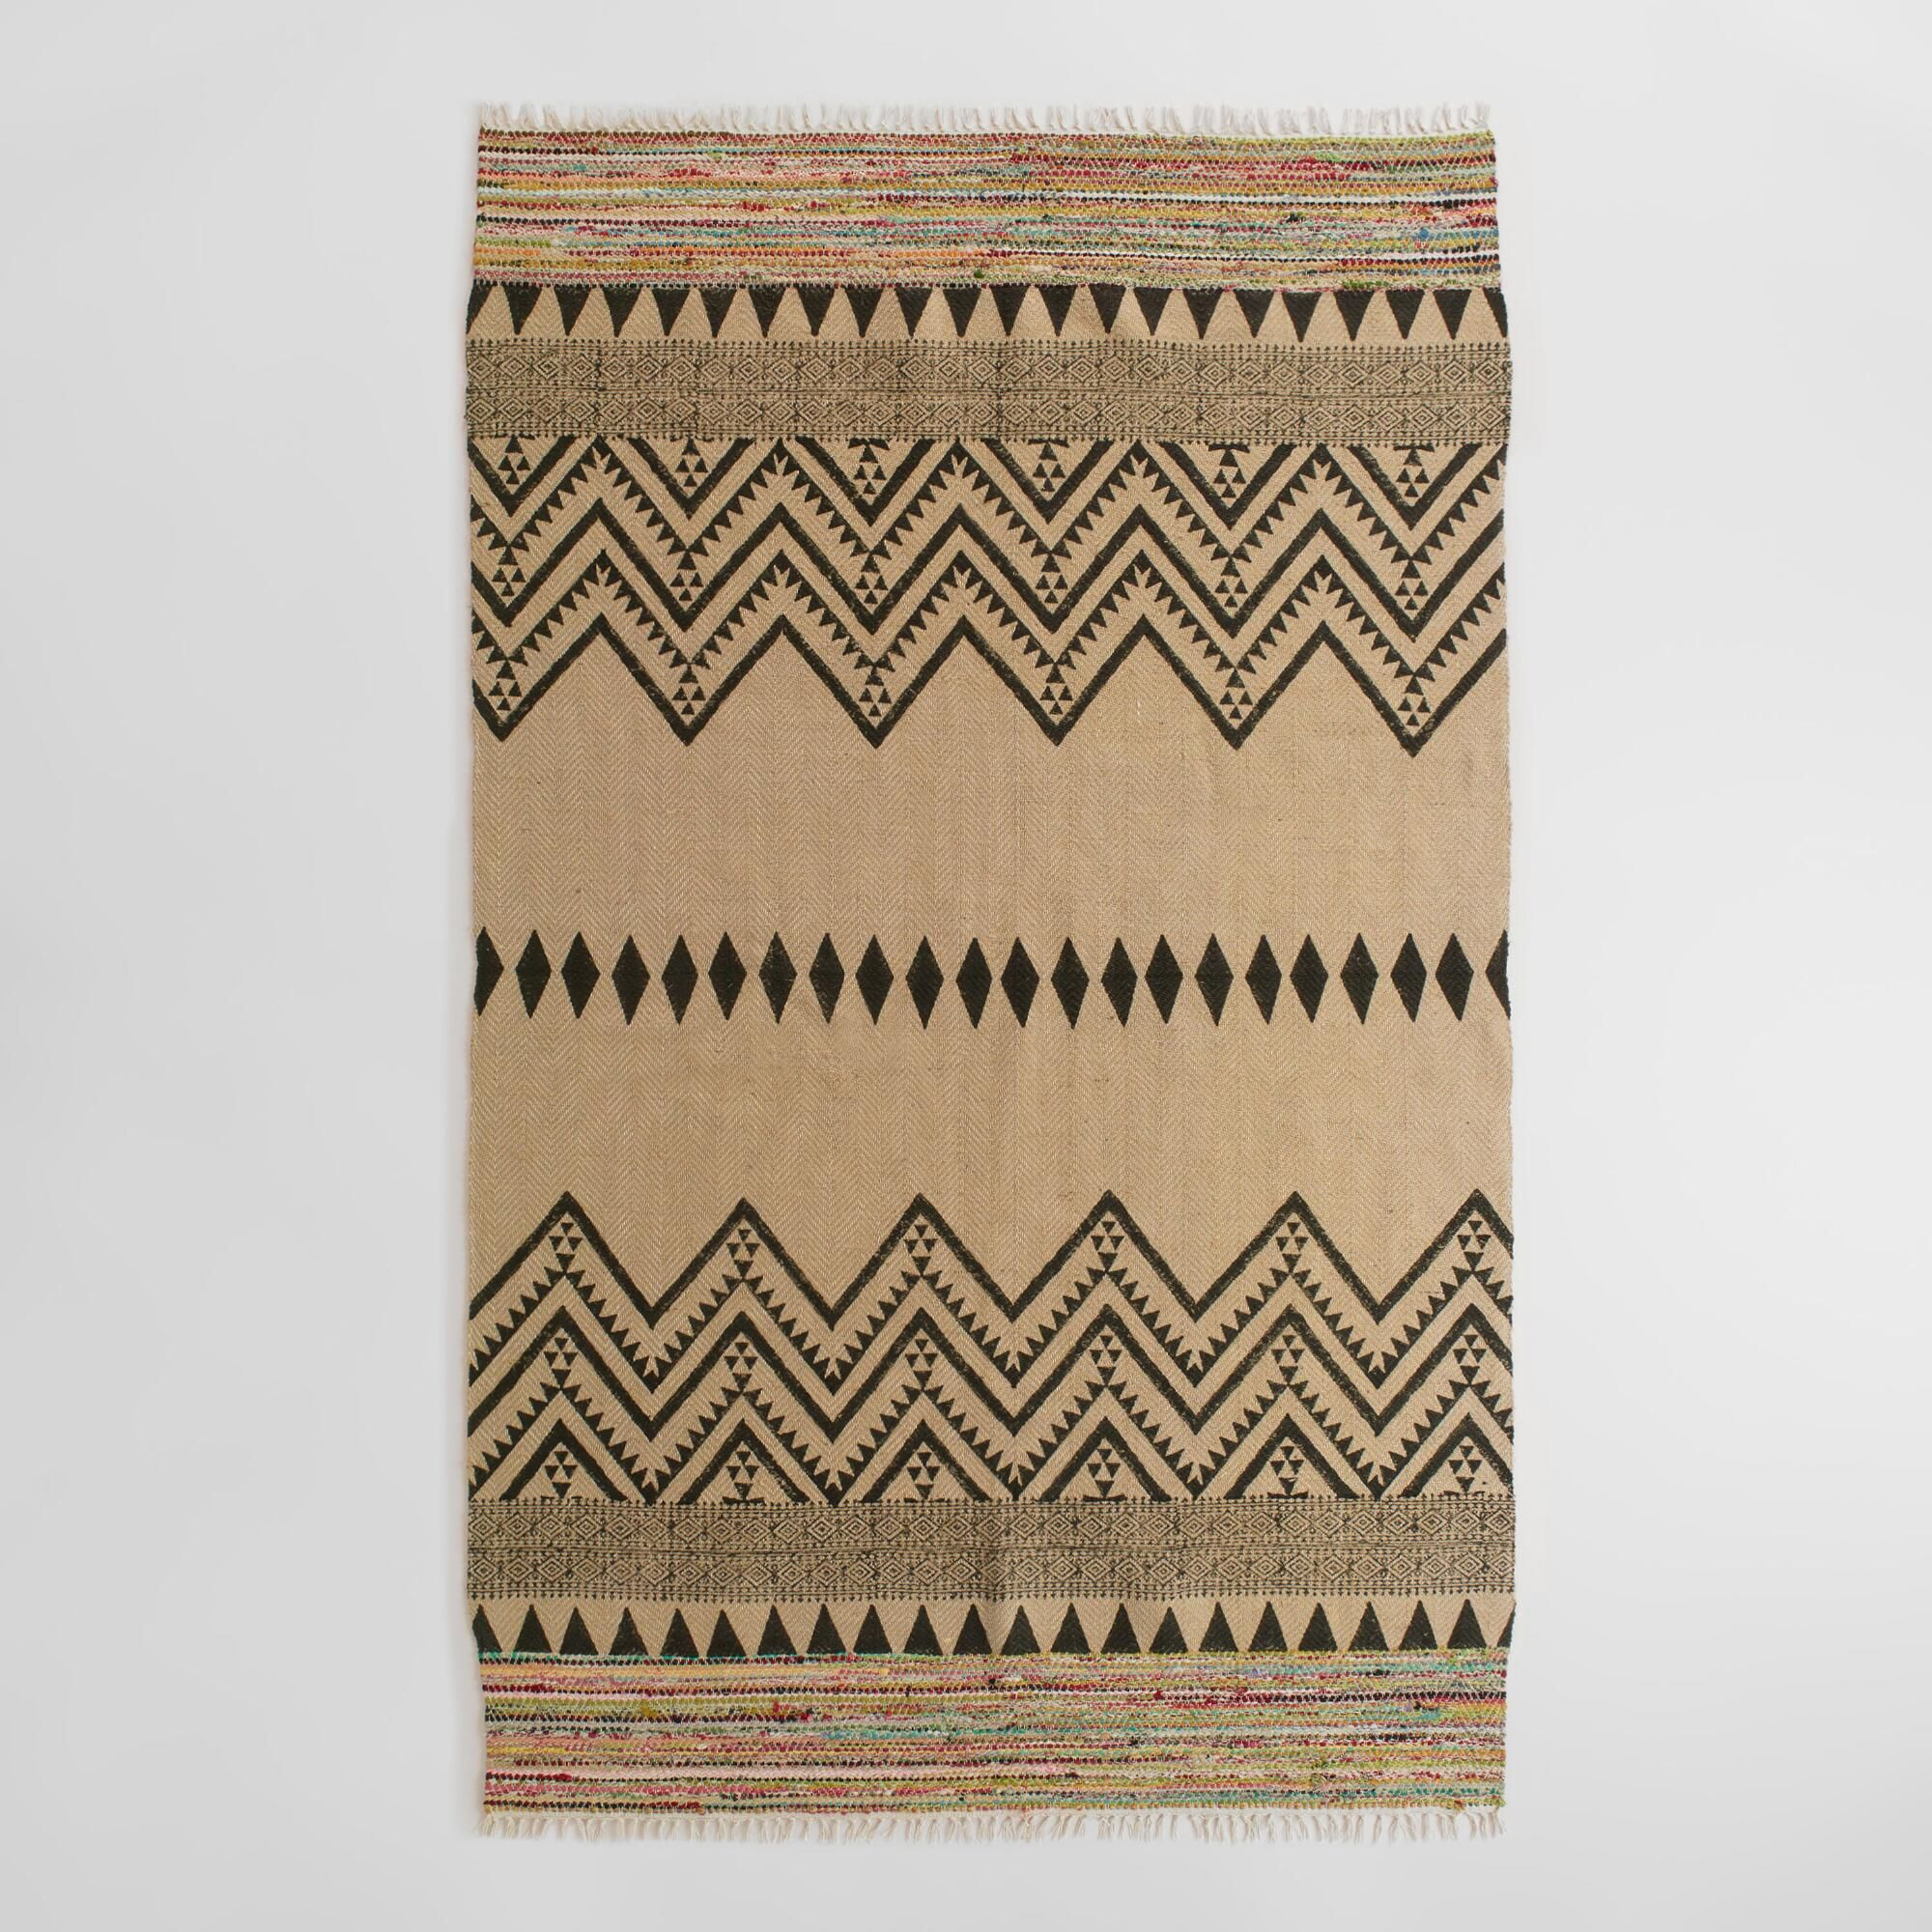 Hand Woven In India Our Exclusive Area Rug Features A Screen Printed Black And